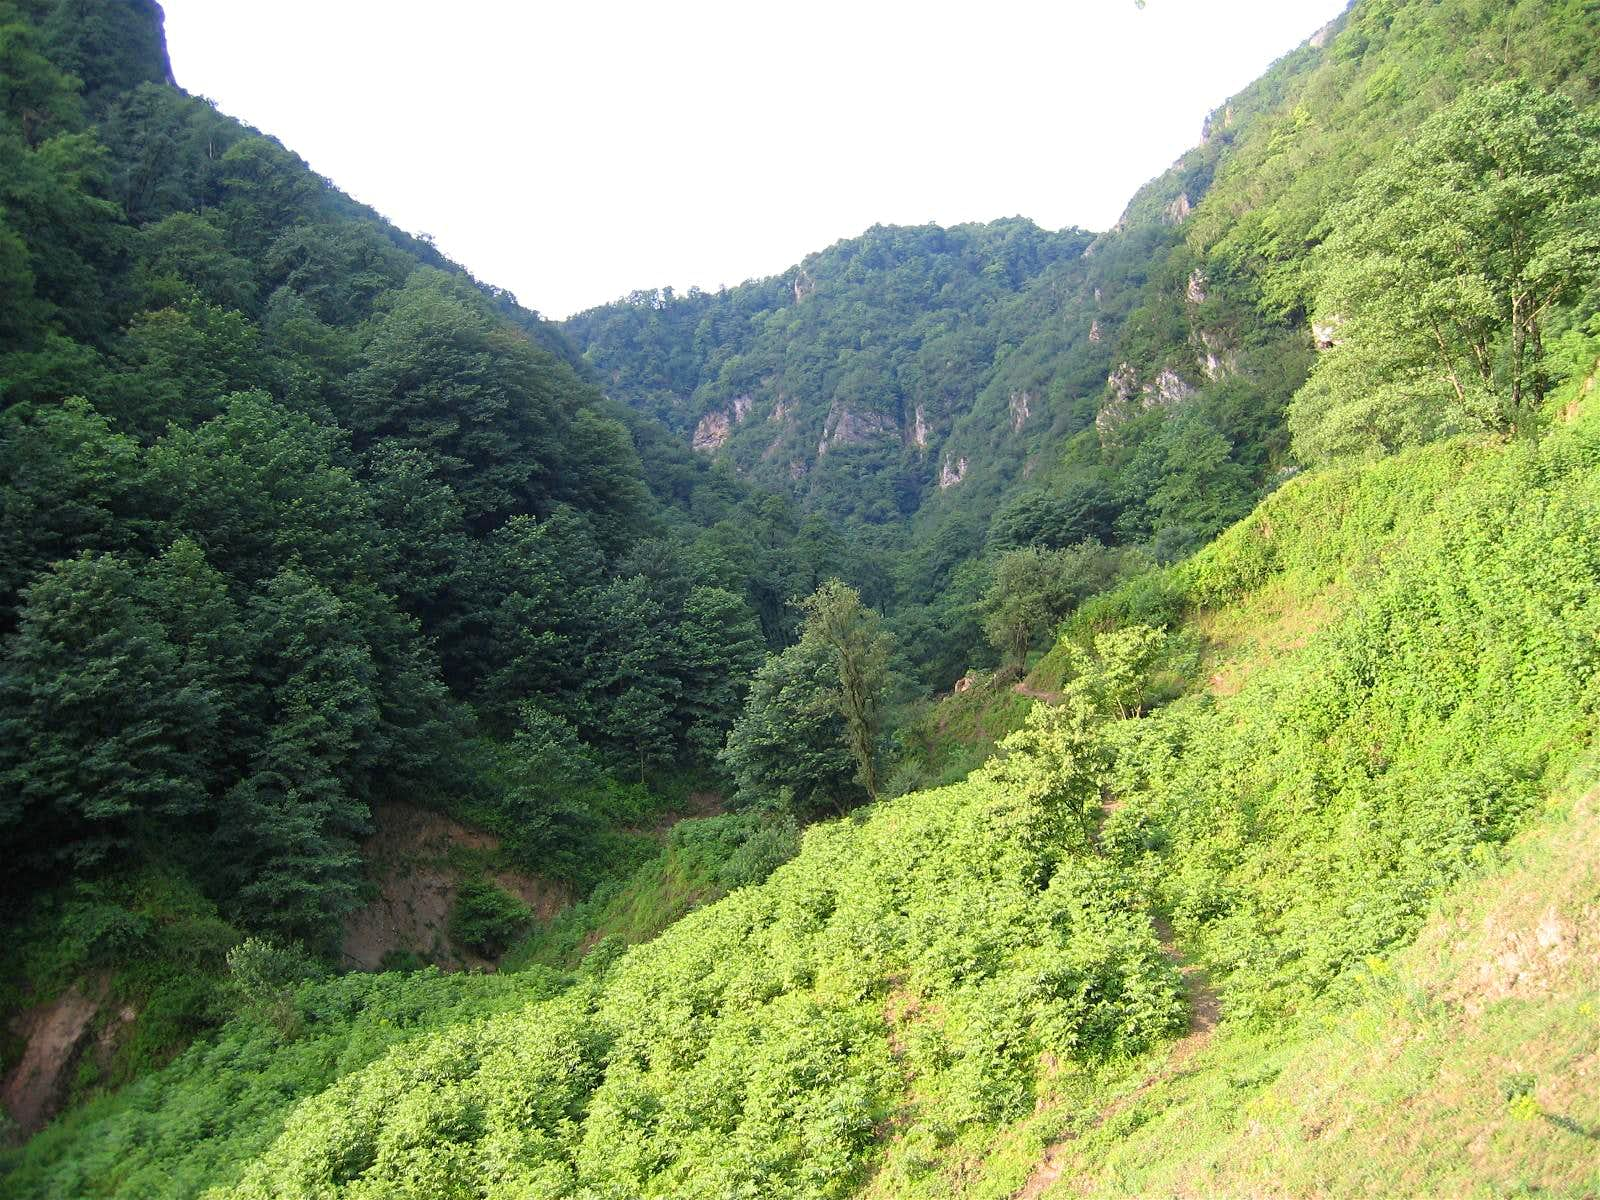 Kojoor (to Caspian Sea) Canyon